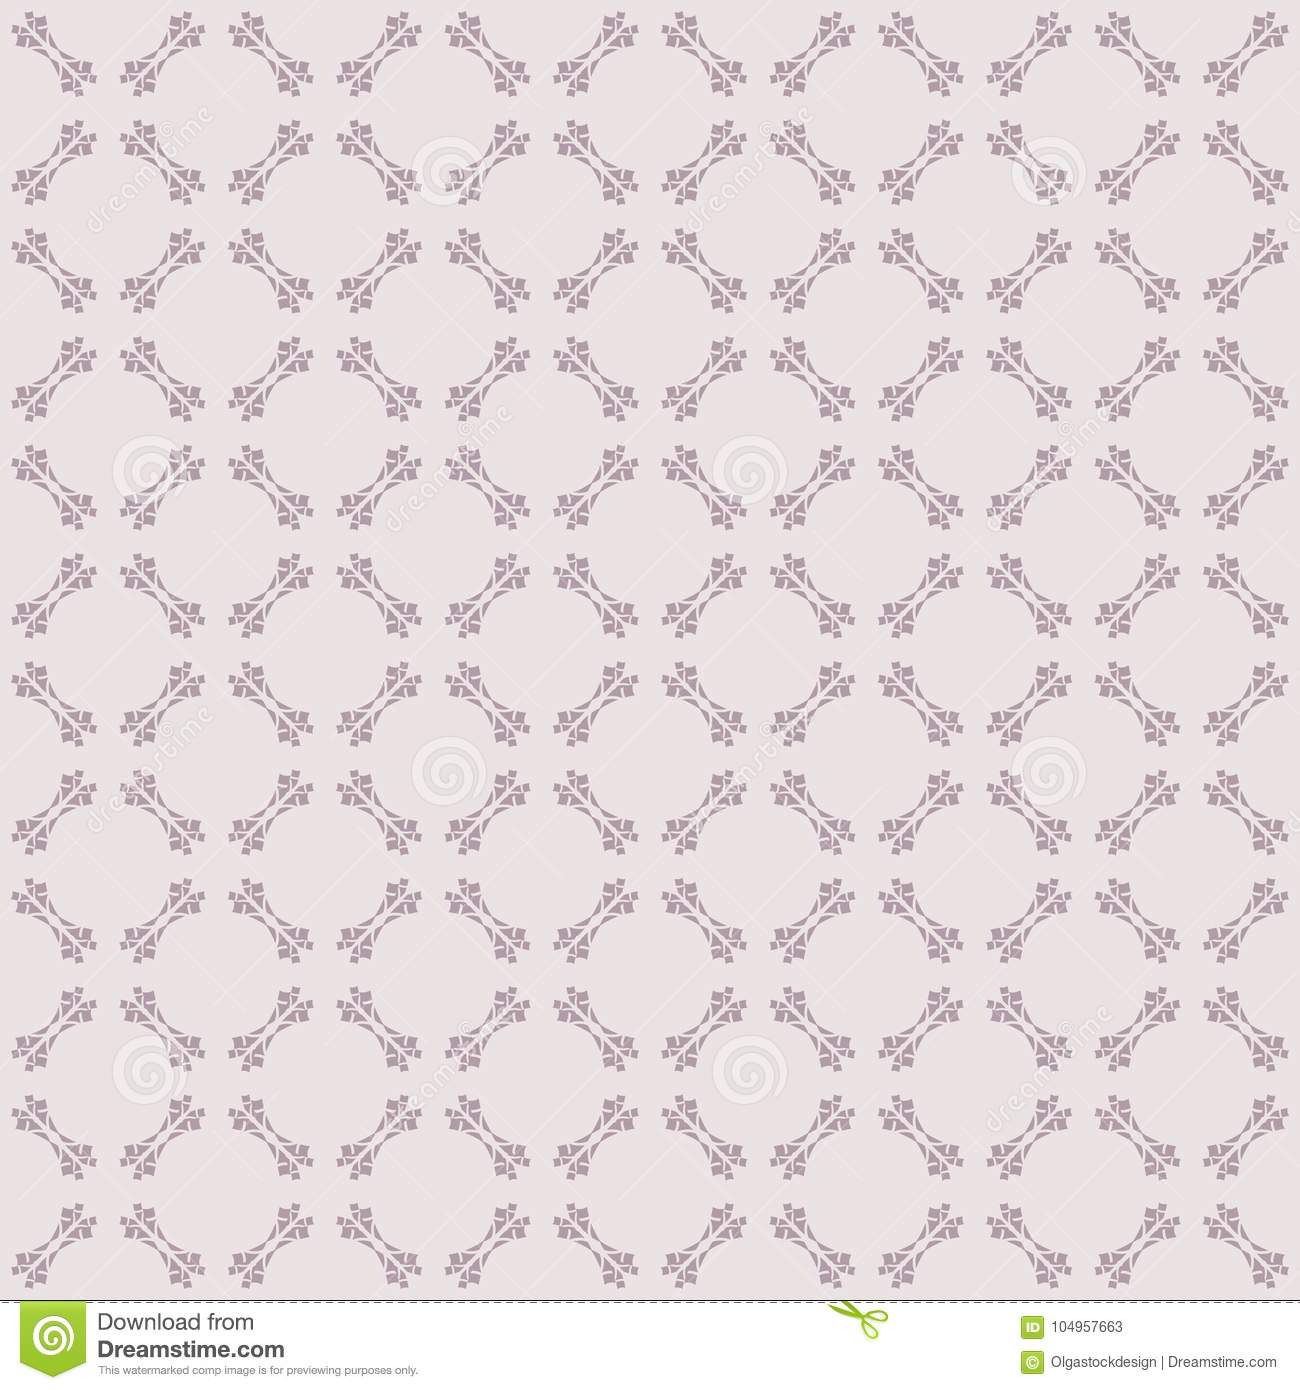 Cute Ornamental Seamless Pattern With Carved Shapes Grid Lace